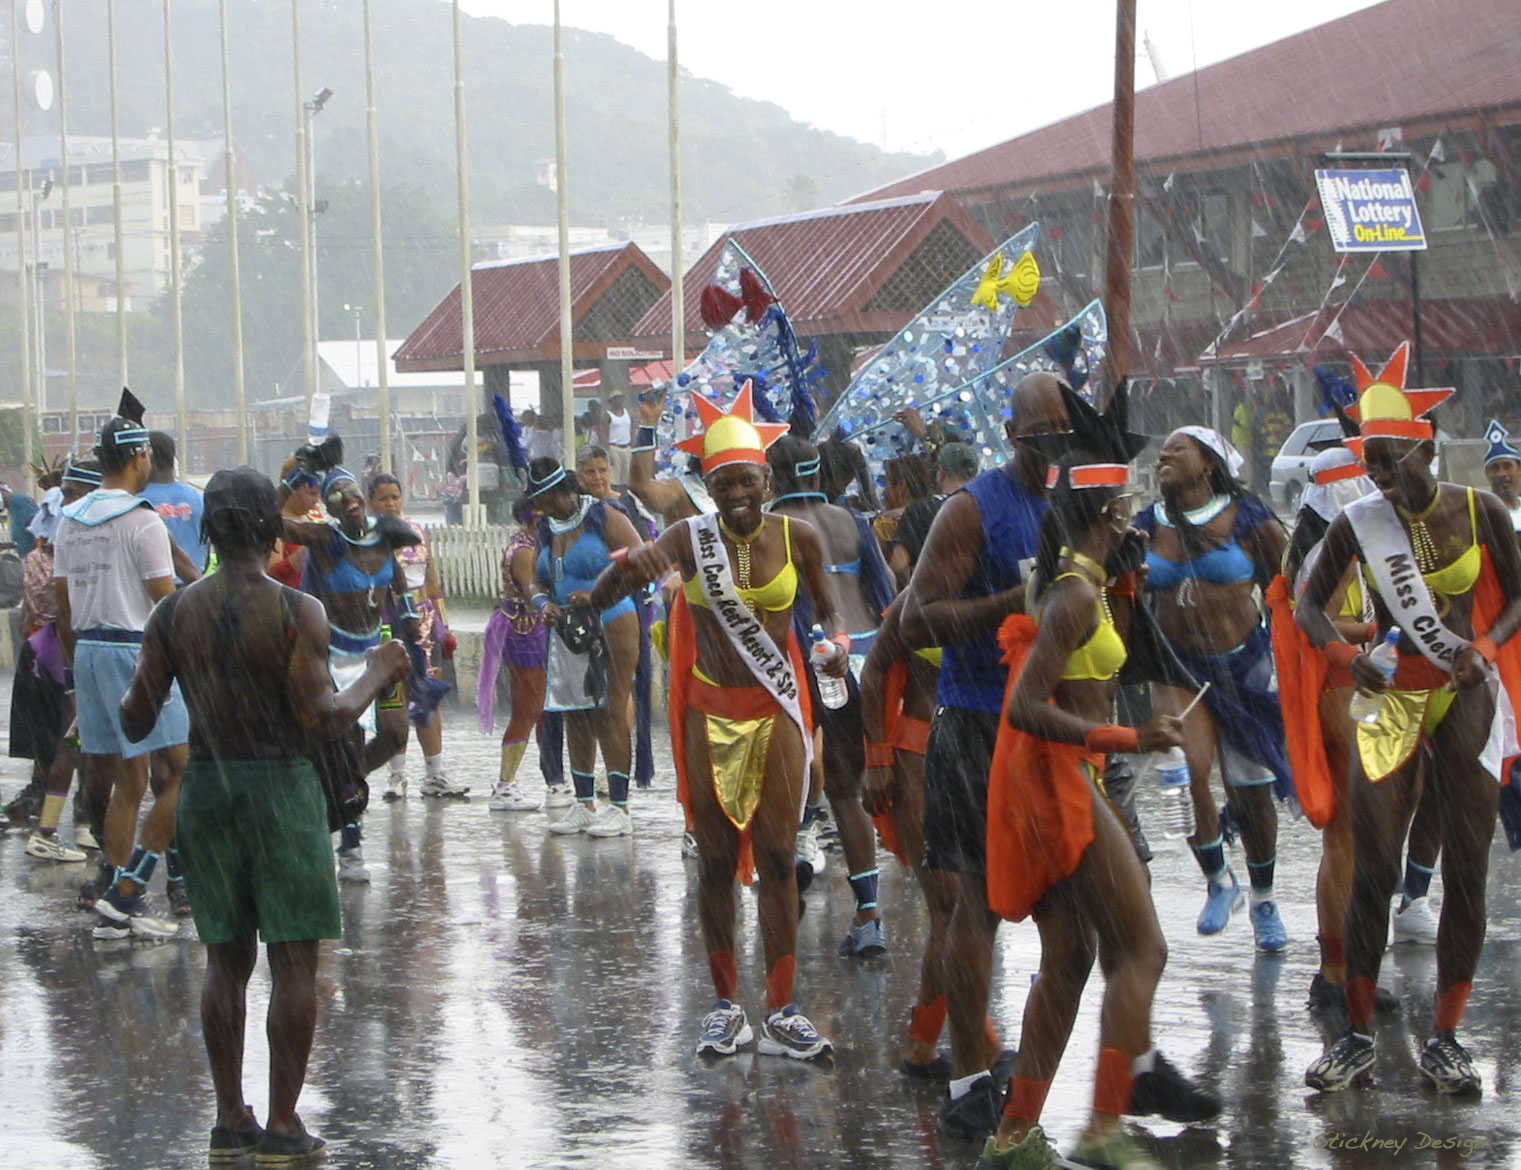 Tropical downpour during Carnival